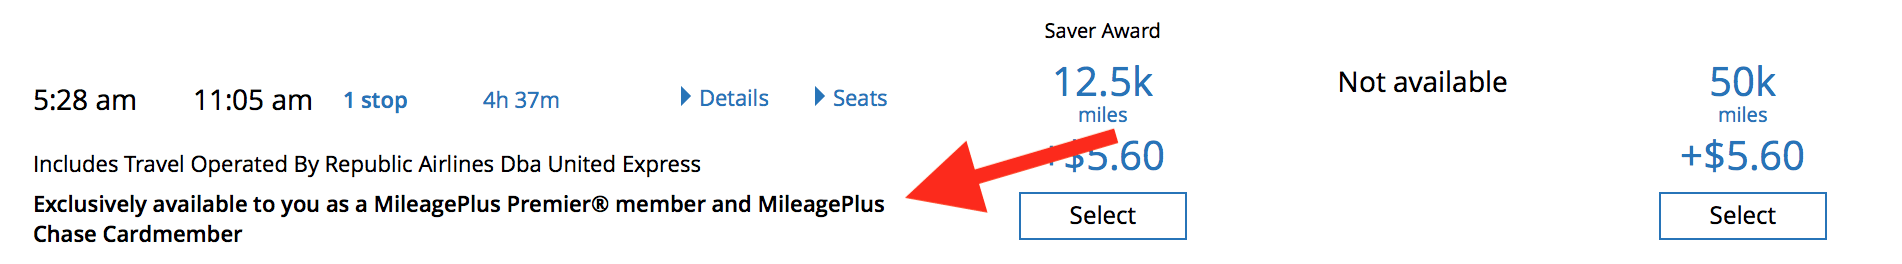 Expanded Award Availability With United Cards